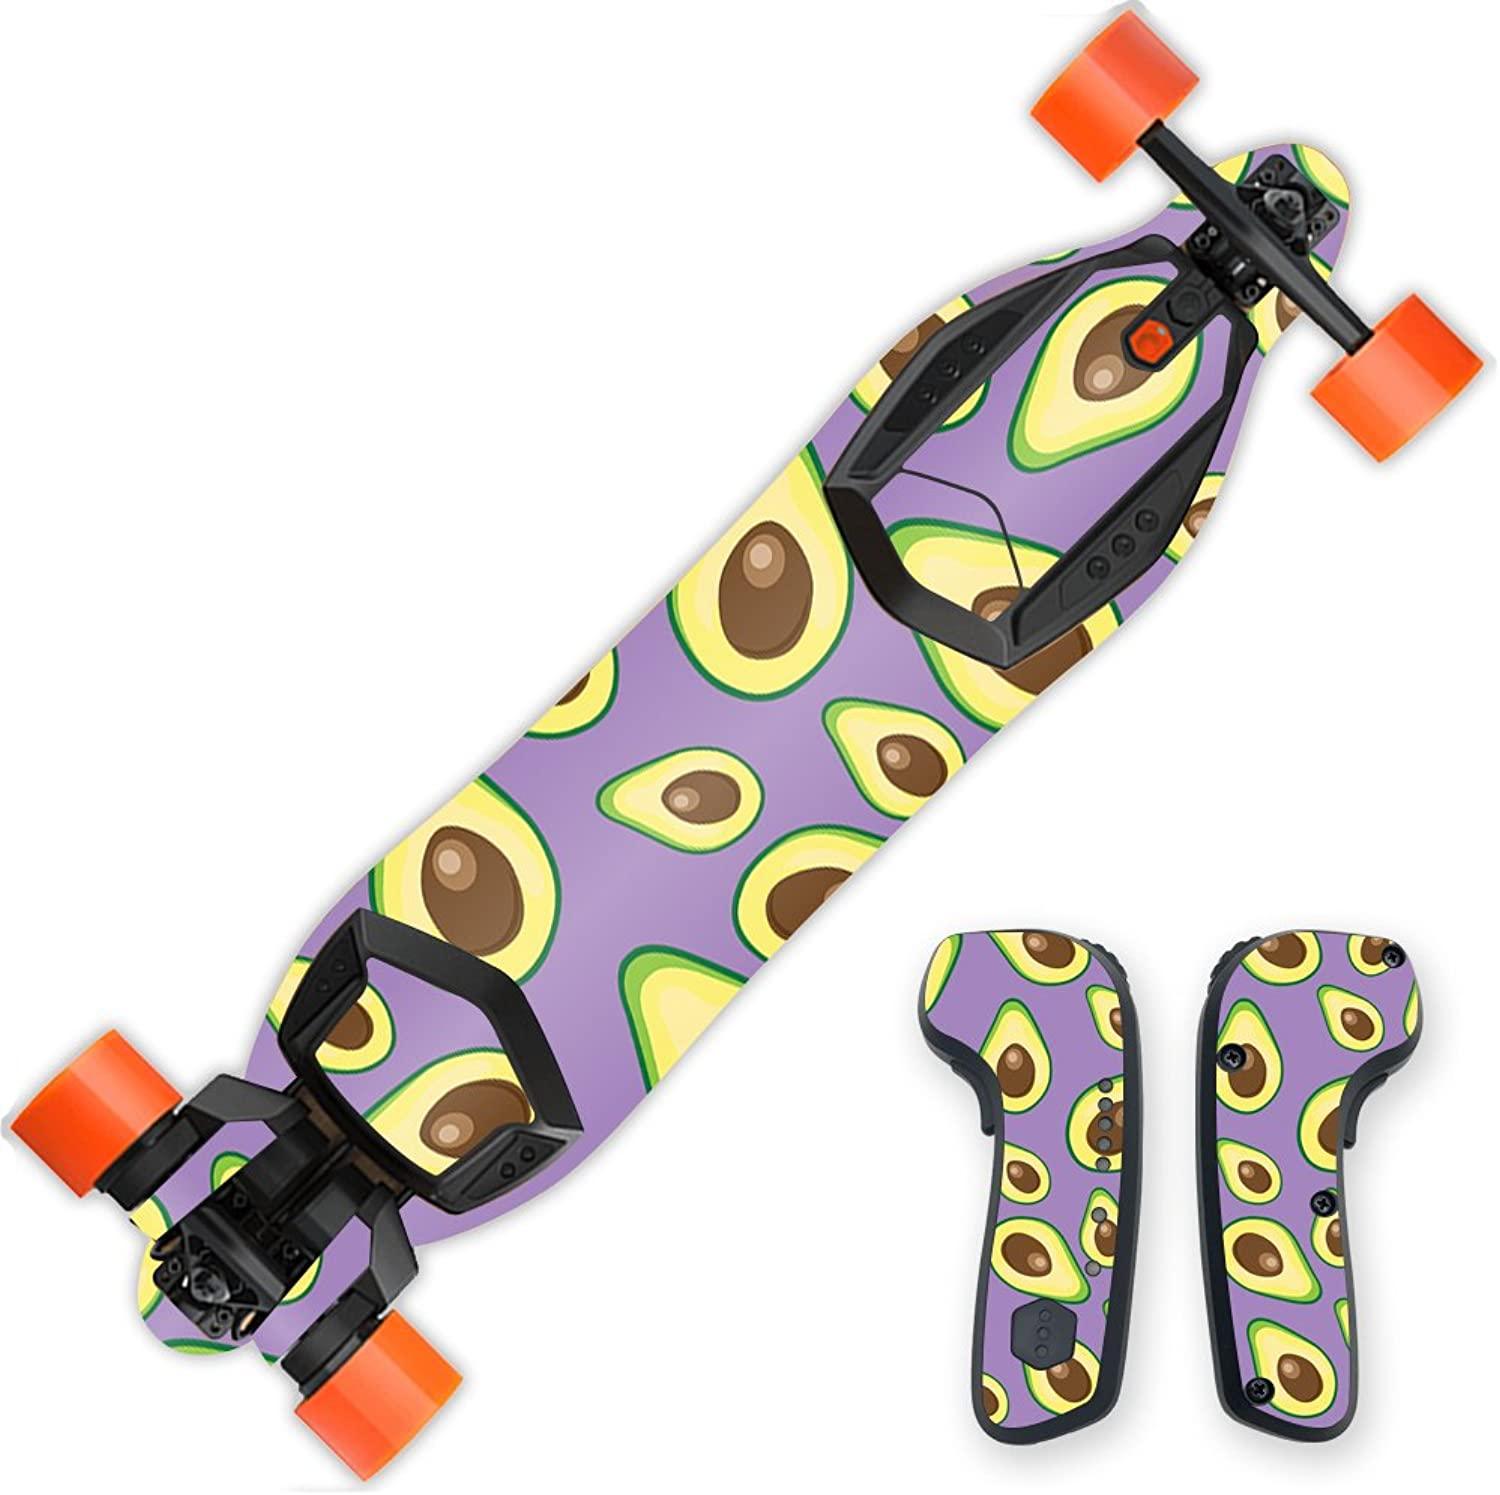 MightySkins Skin Compatible with Boosted Board wrap Cover Sticker Skins Purple Avocados